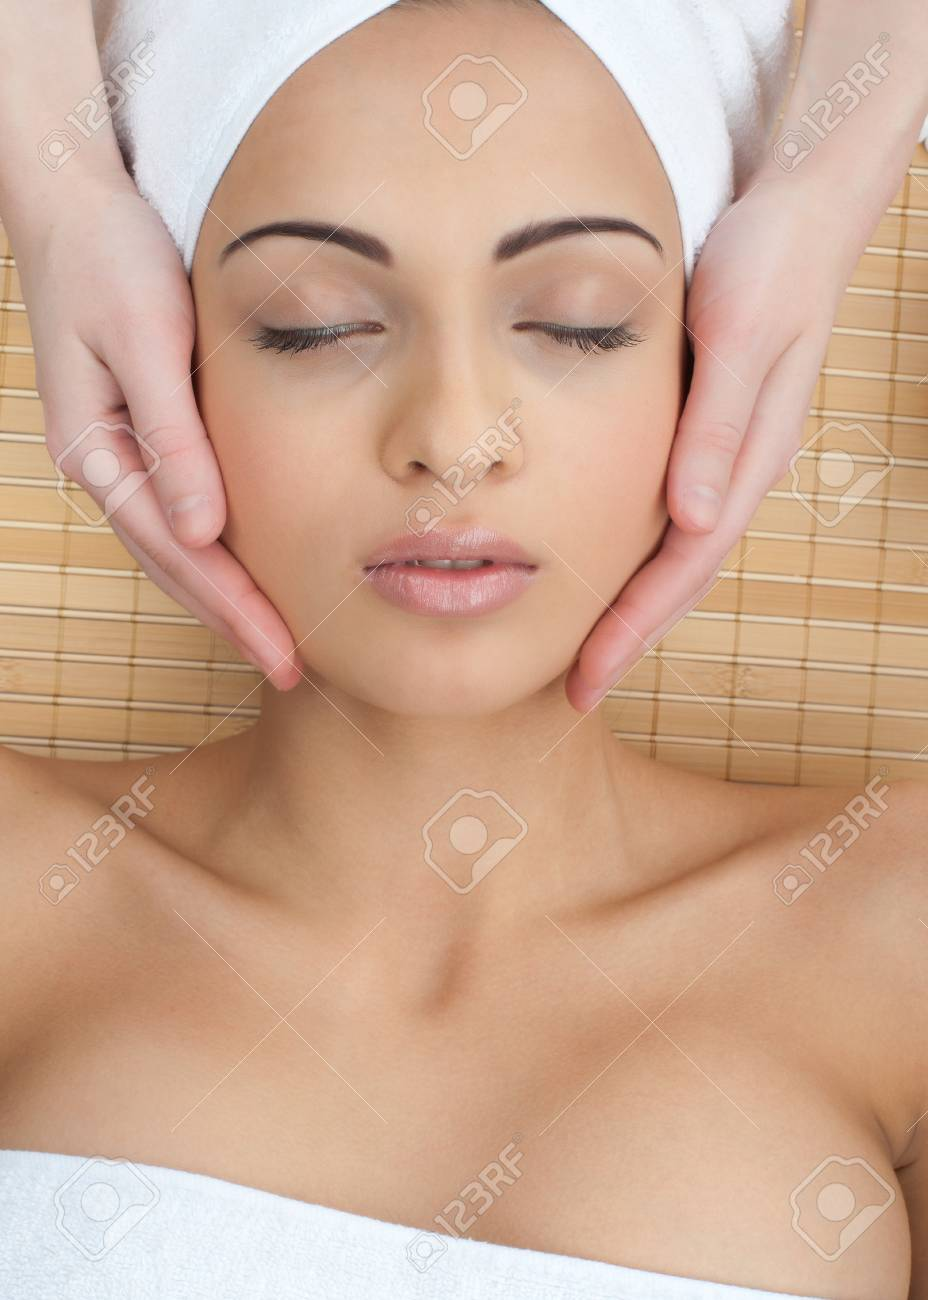 Close-up of a female receiving facial massage at spa salon Stock Photo - 10844848